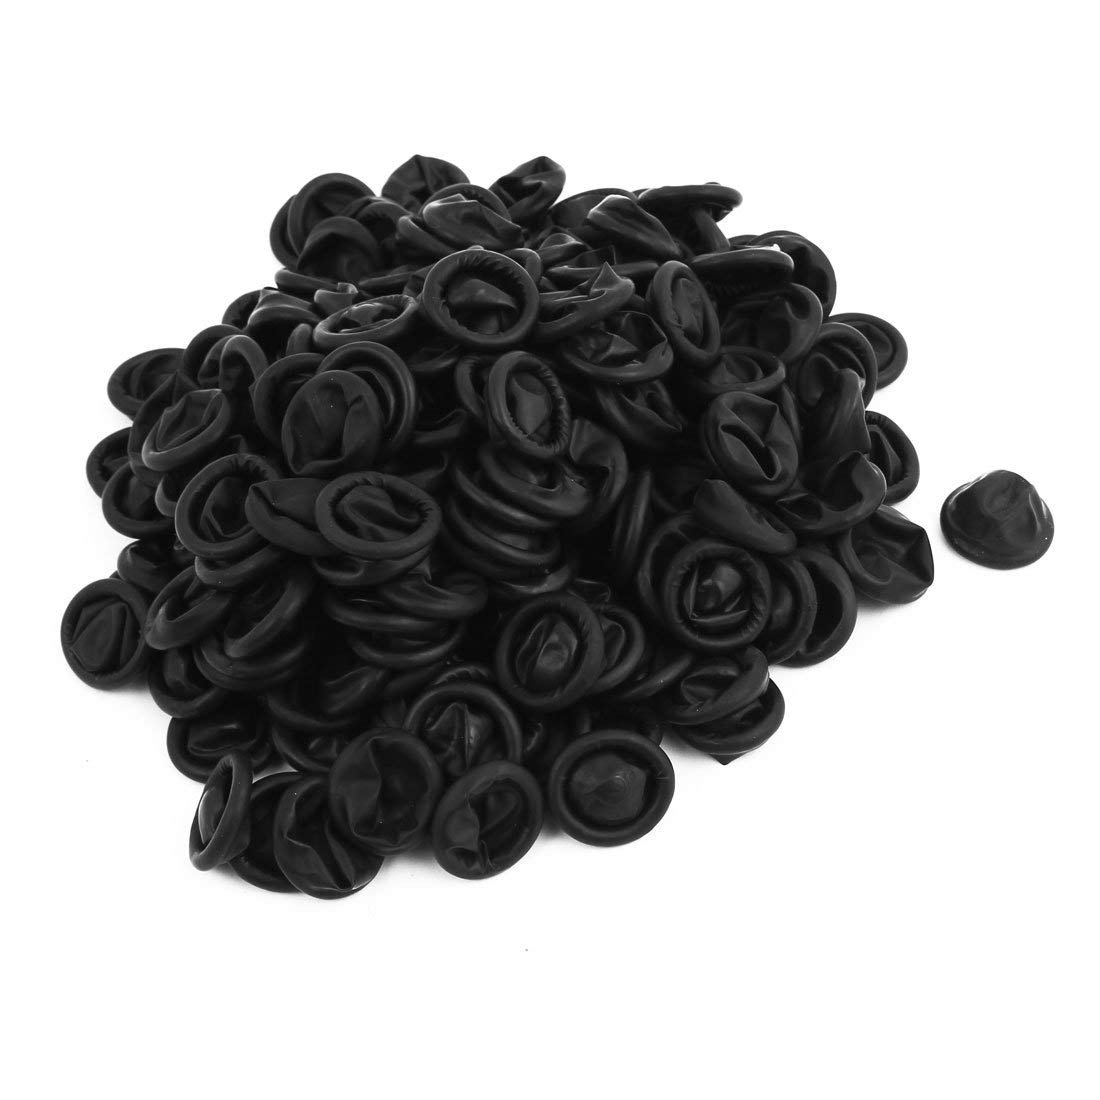 ESD Finger Cots, Black Color, 4 Mil Thick, Medium(Pack of 1000)